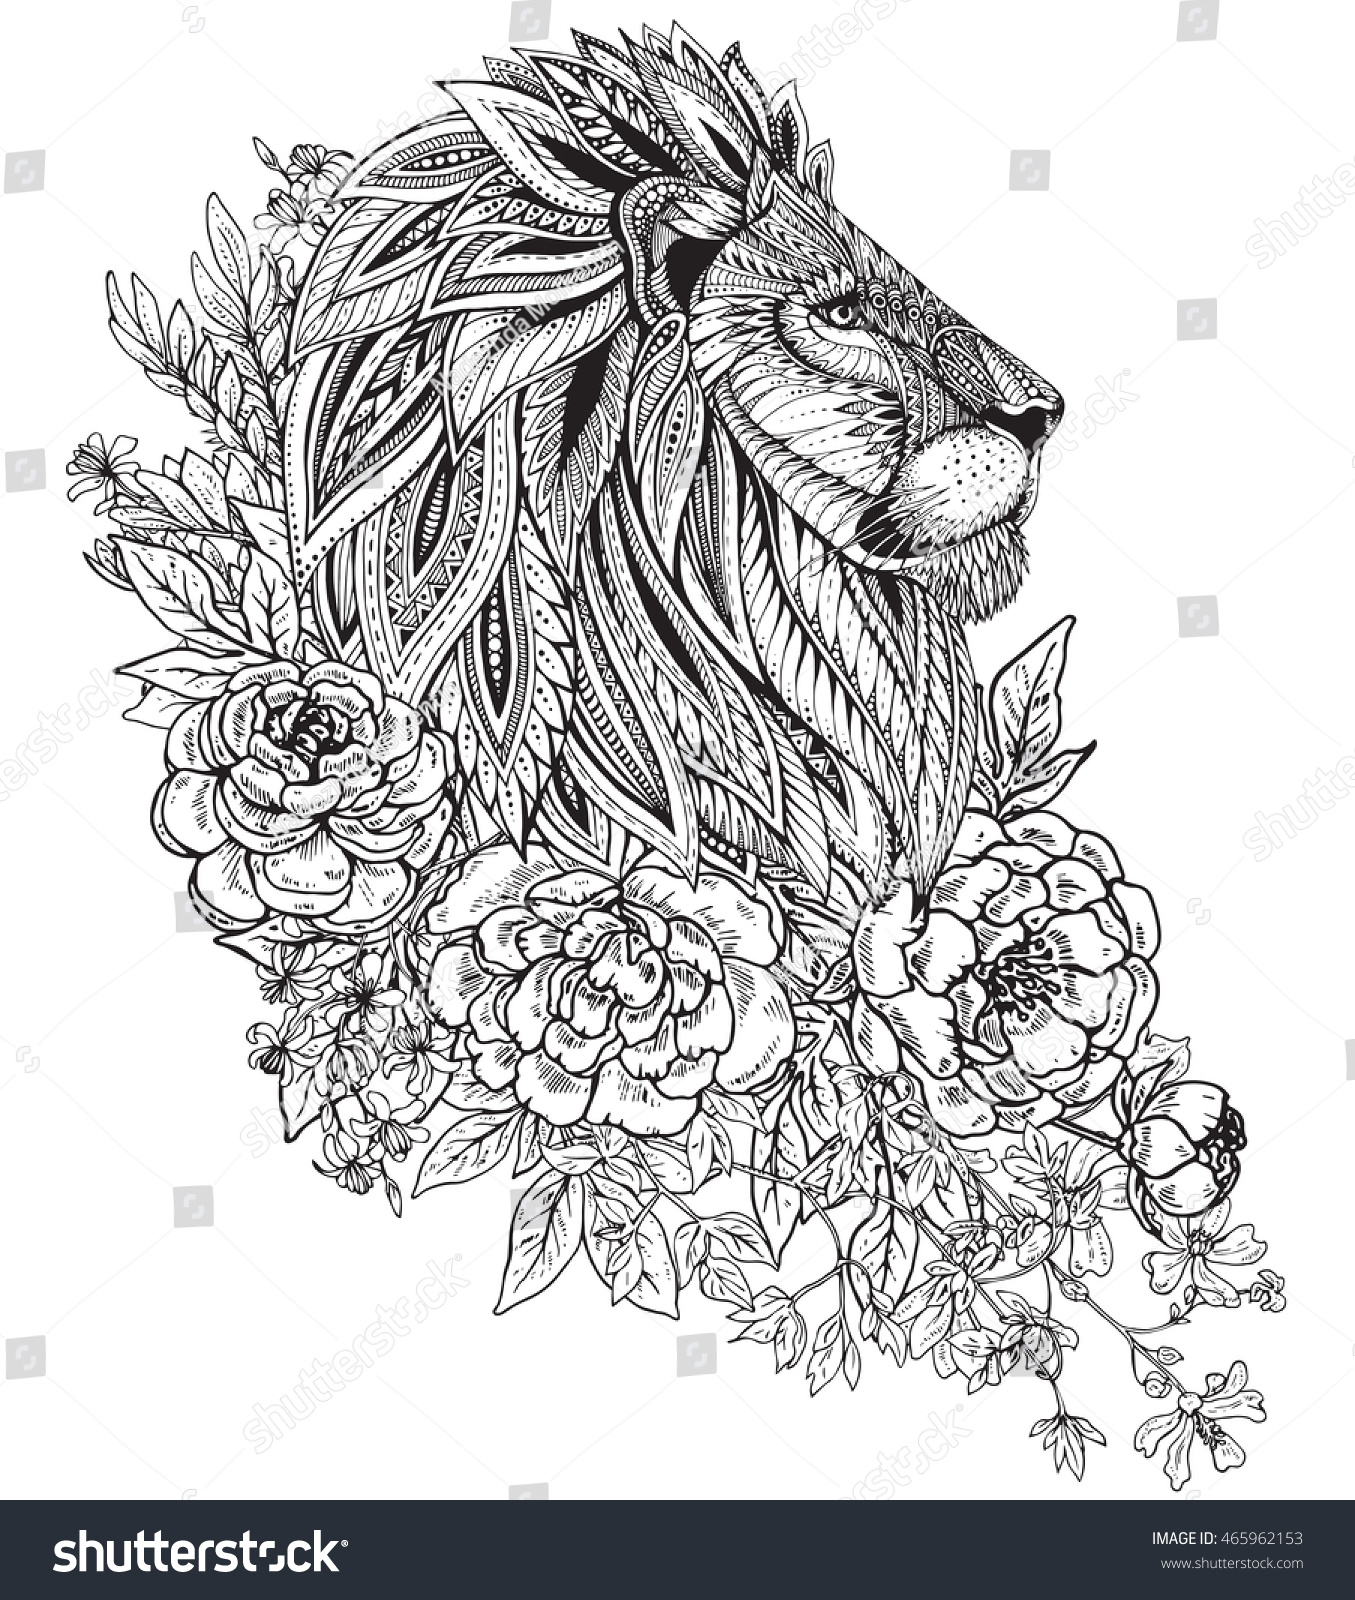 Hand Drawn Graphic Ornate Head Lion Stock Vector